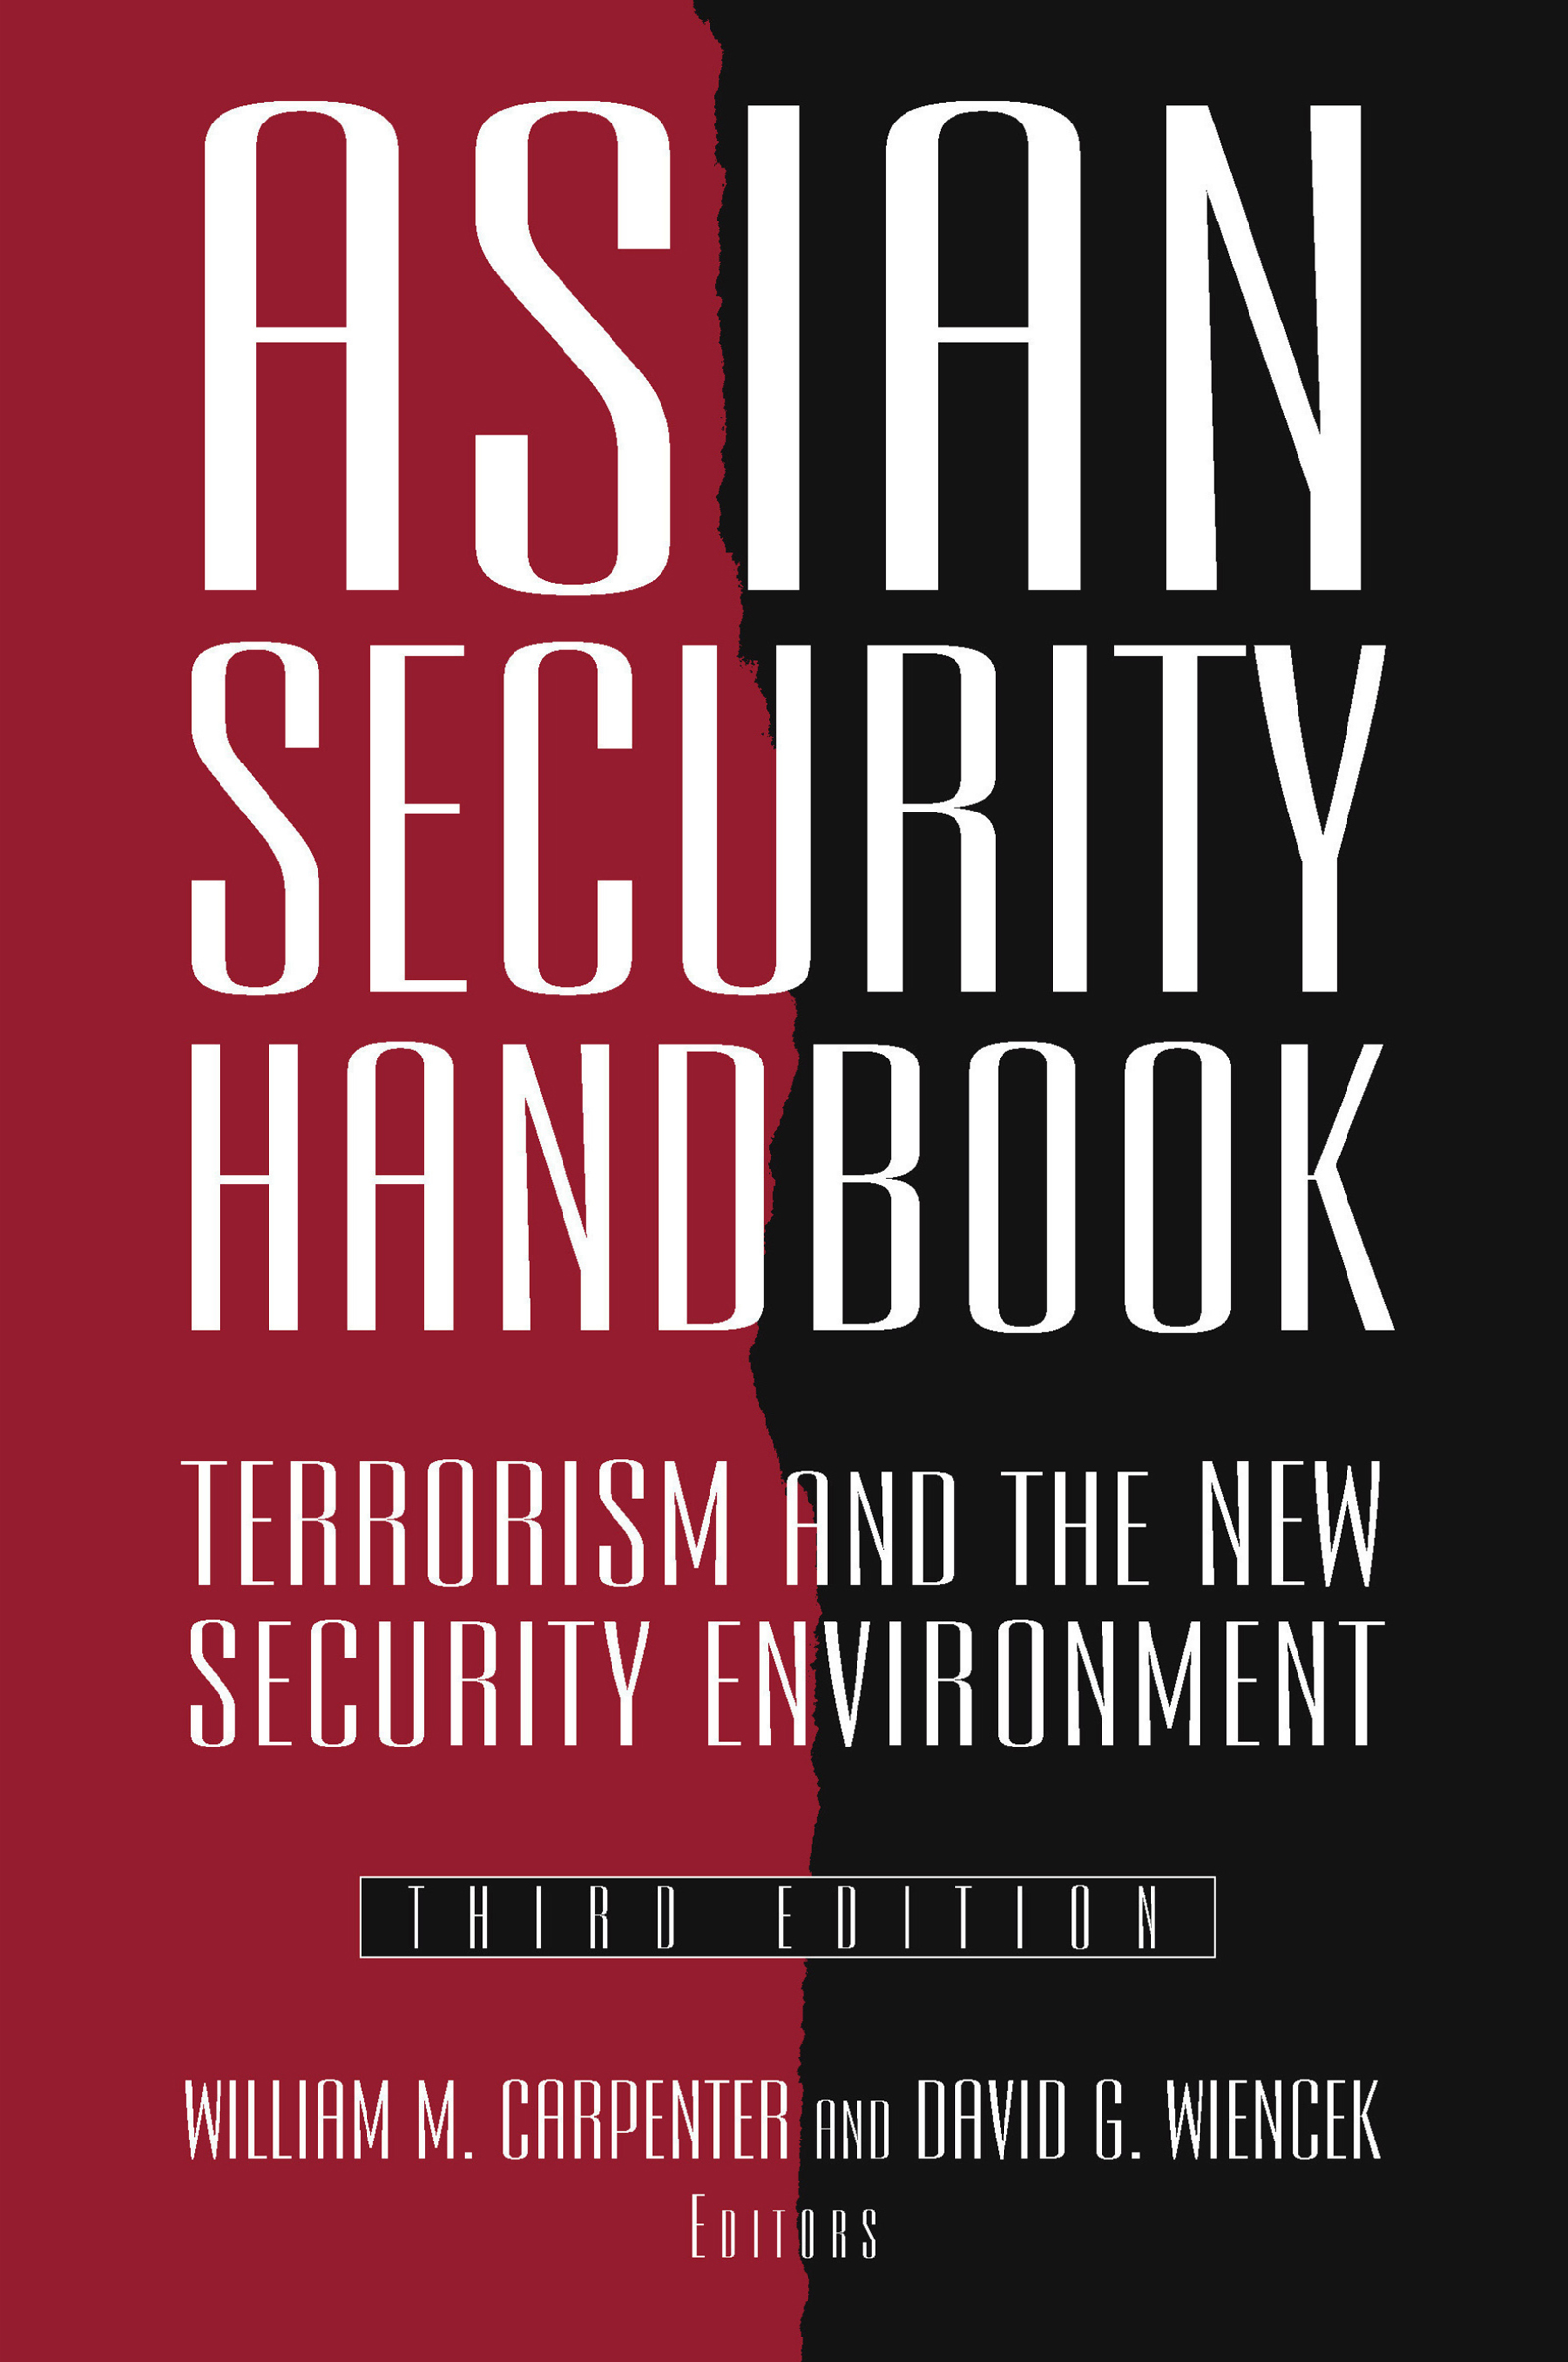 Asian Security Handbook: Terrorism and the New Security Environment book cover